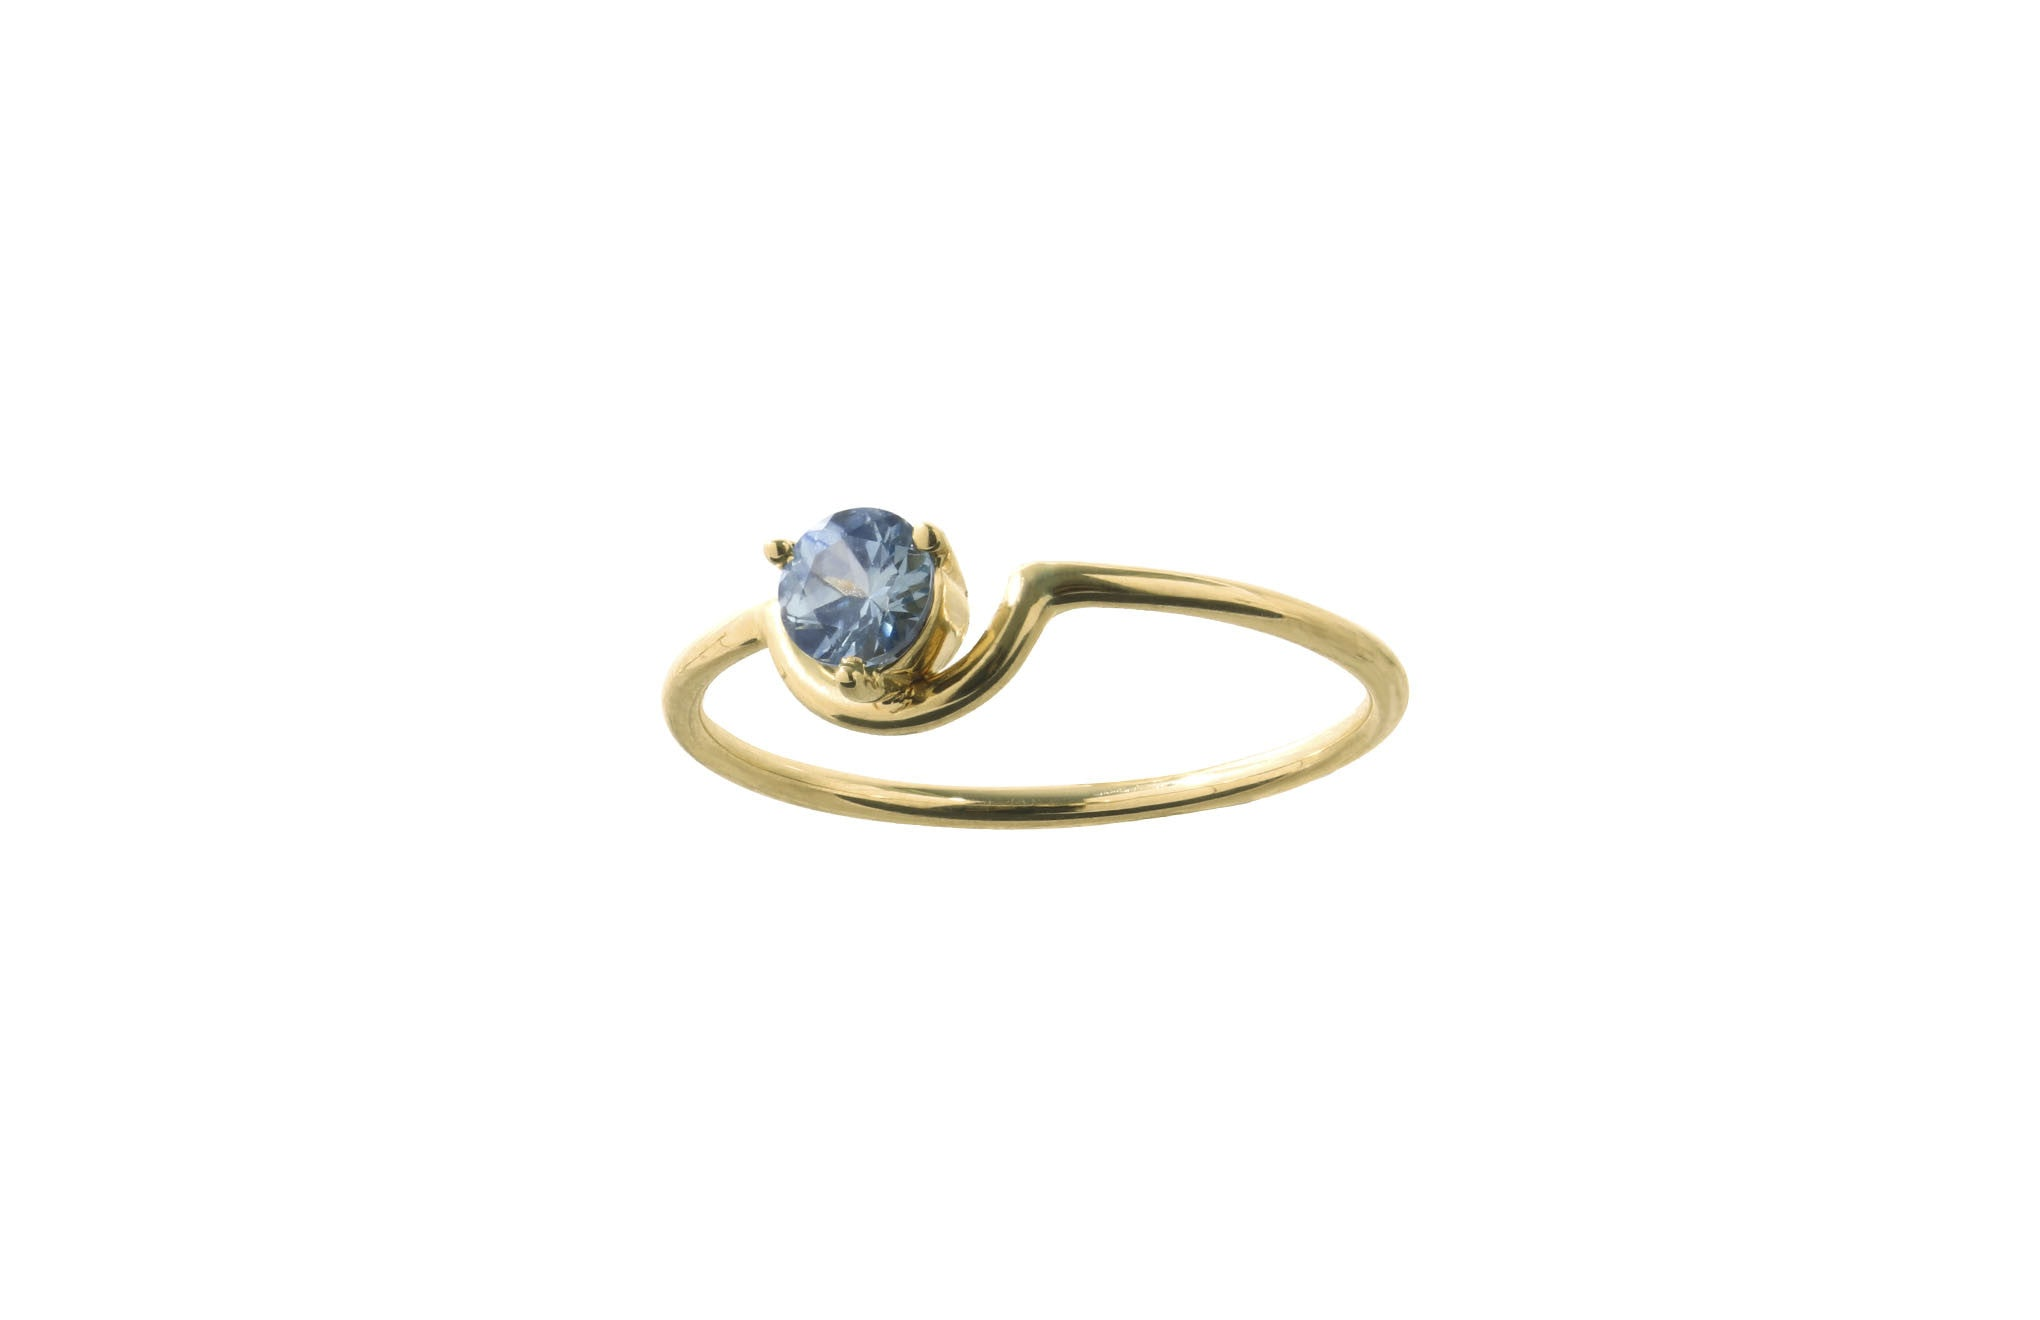 large sapphire a kind blue loading light ring moda of tito pedrini by operandi one